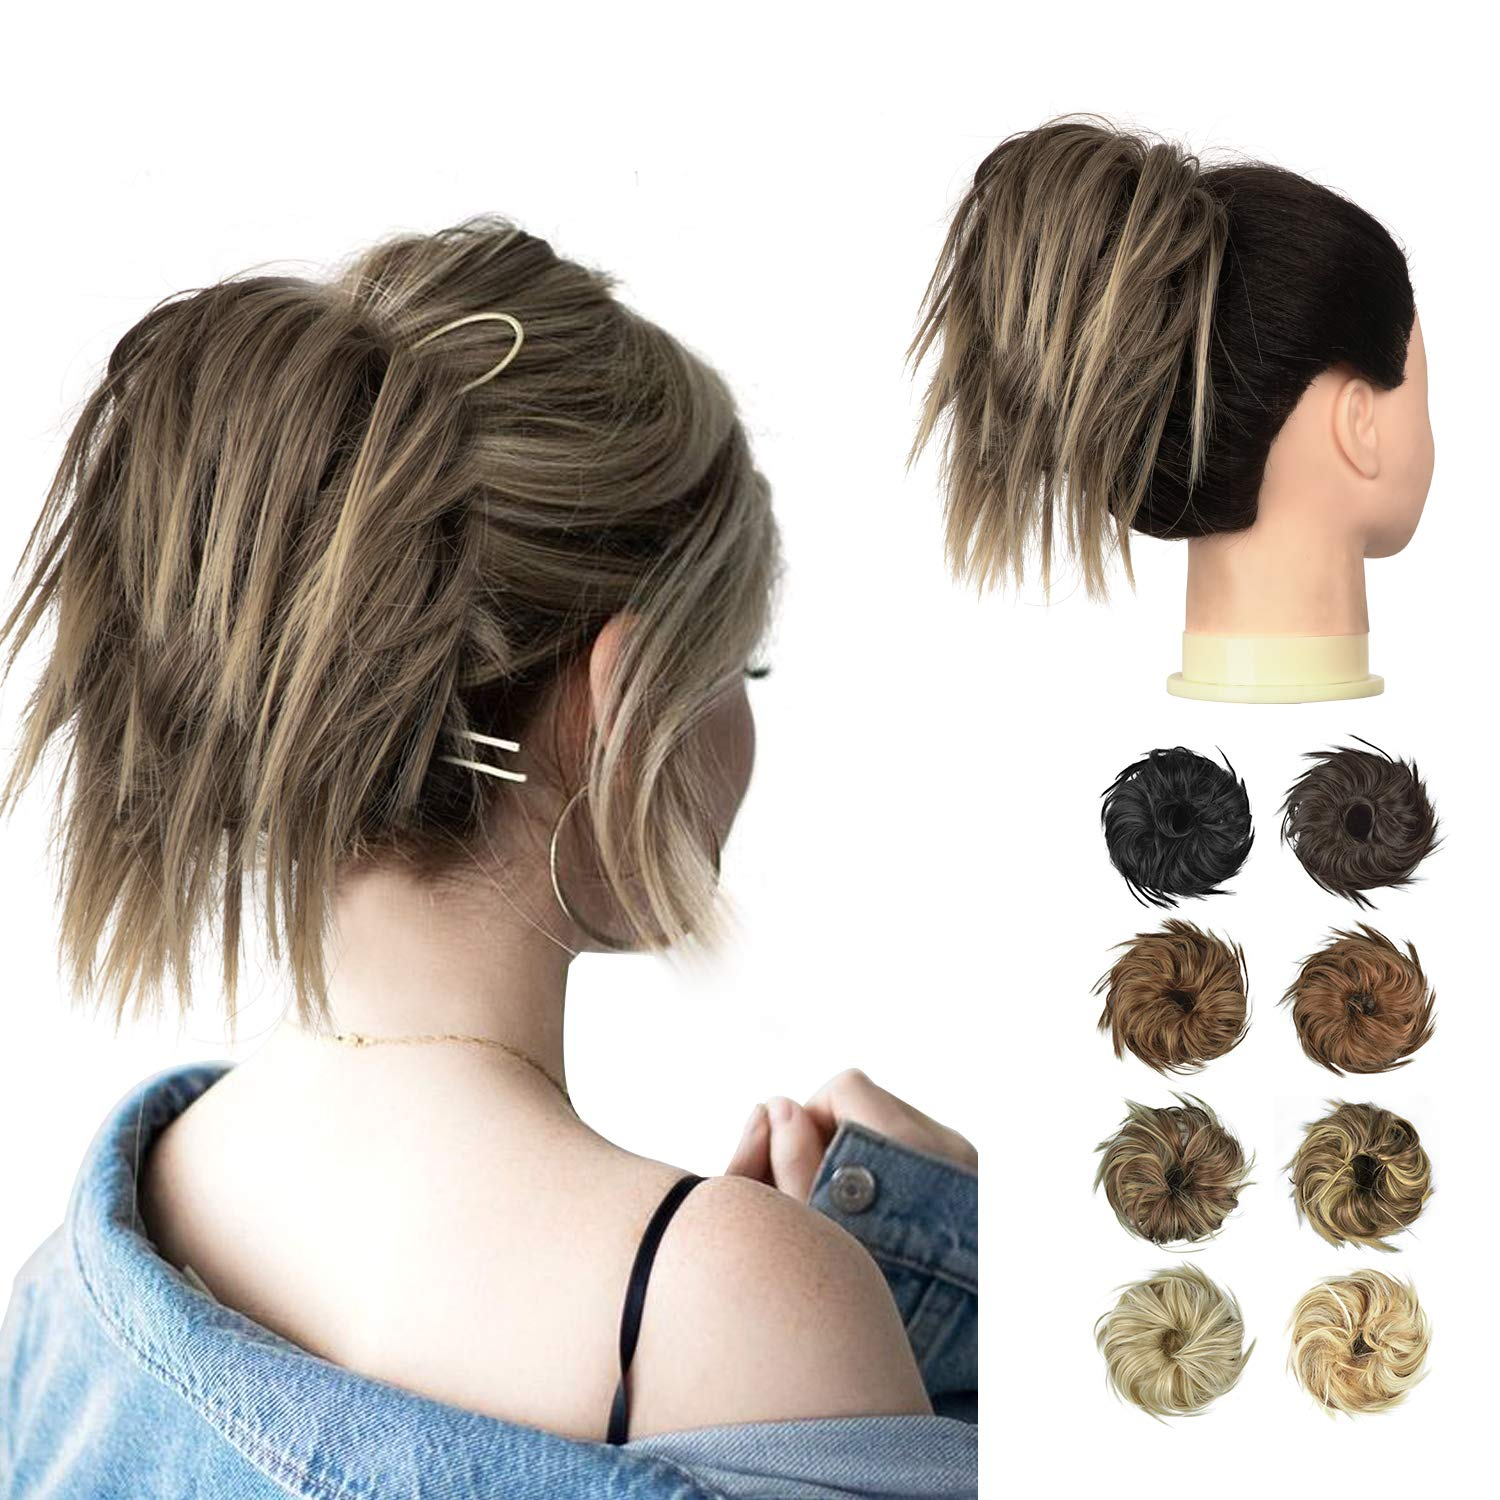 FESHFEN Tousled Updo Messy Hair Bun Hairpiece, Fluffy Hair Bun Extension Curly Messy Bun Hair Piece Synthetic Ponytail Hair Scrunchies with Elastic Rubber For Women Girls